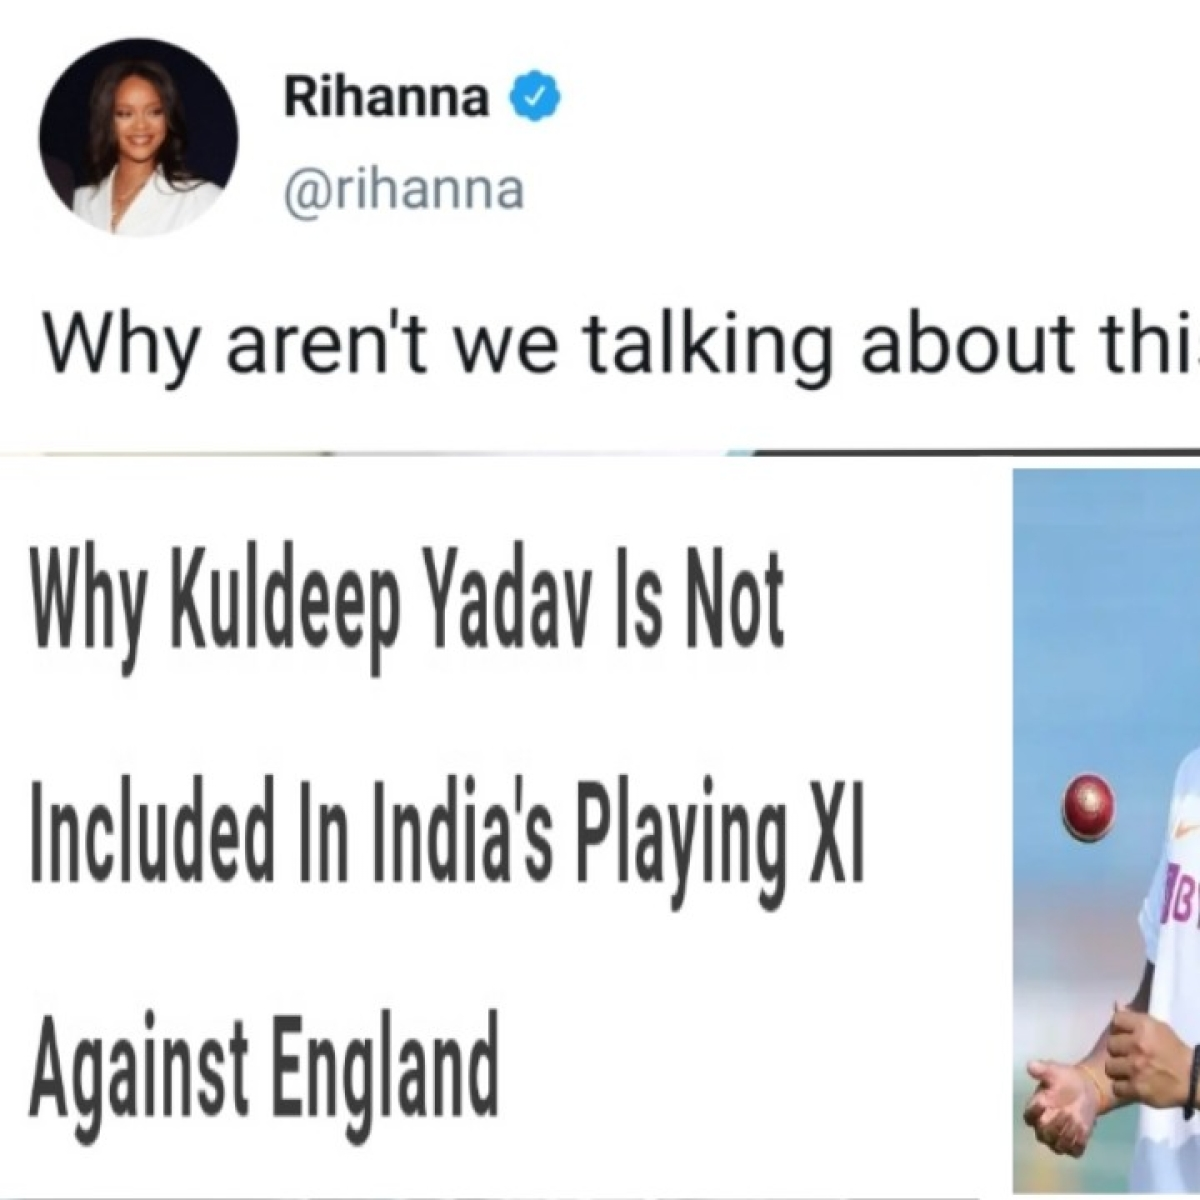 Twitteratti is hoping mad over yet another cold shoulder to Kuldeep Yadav